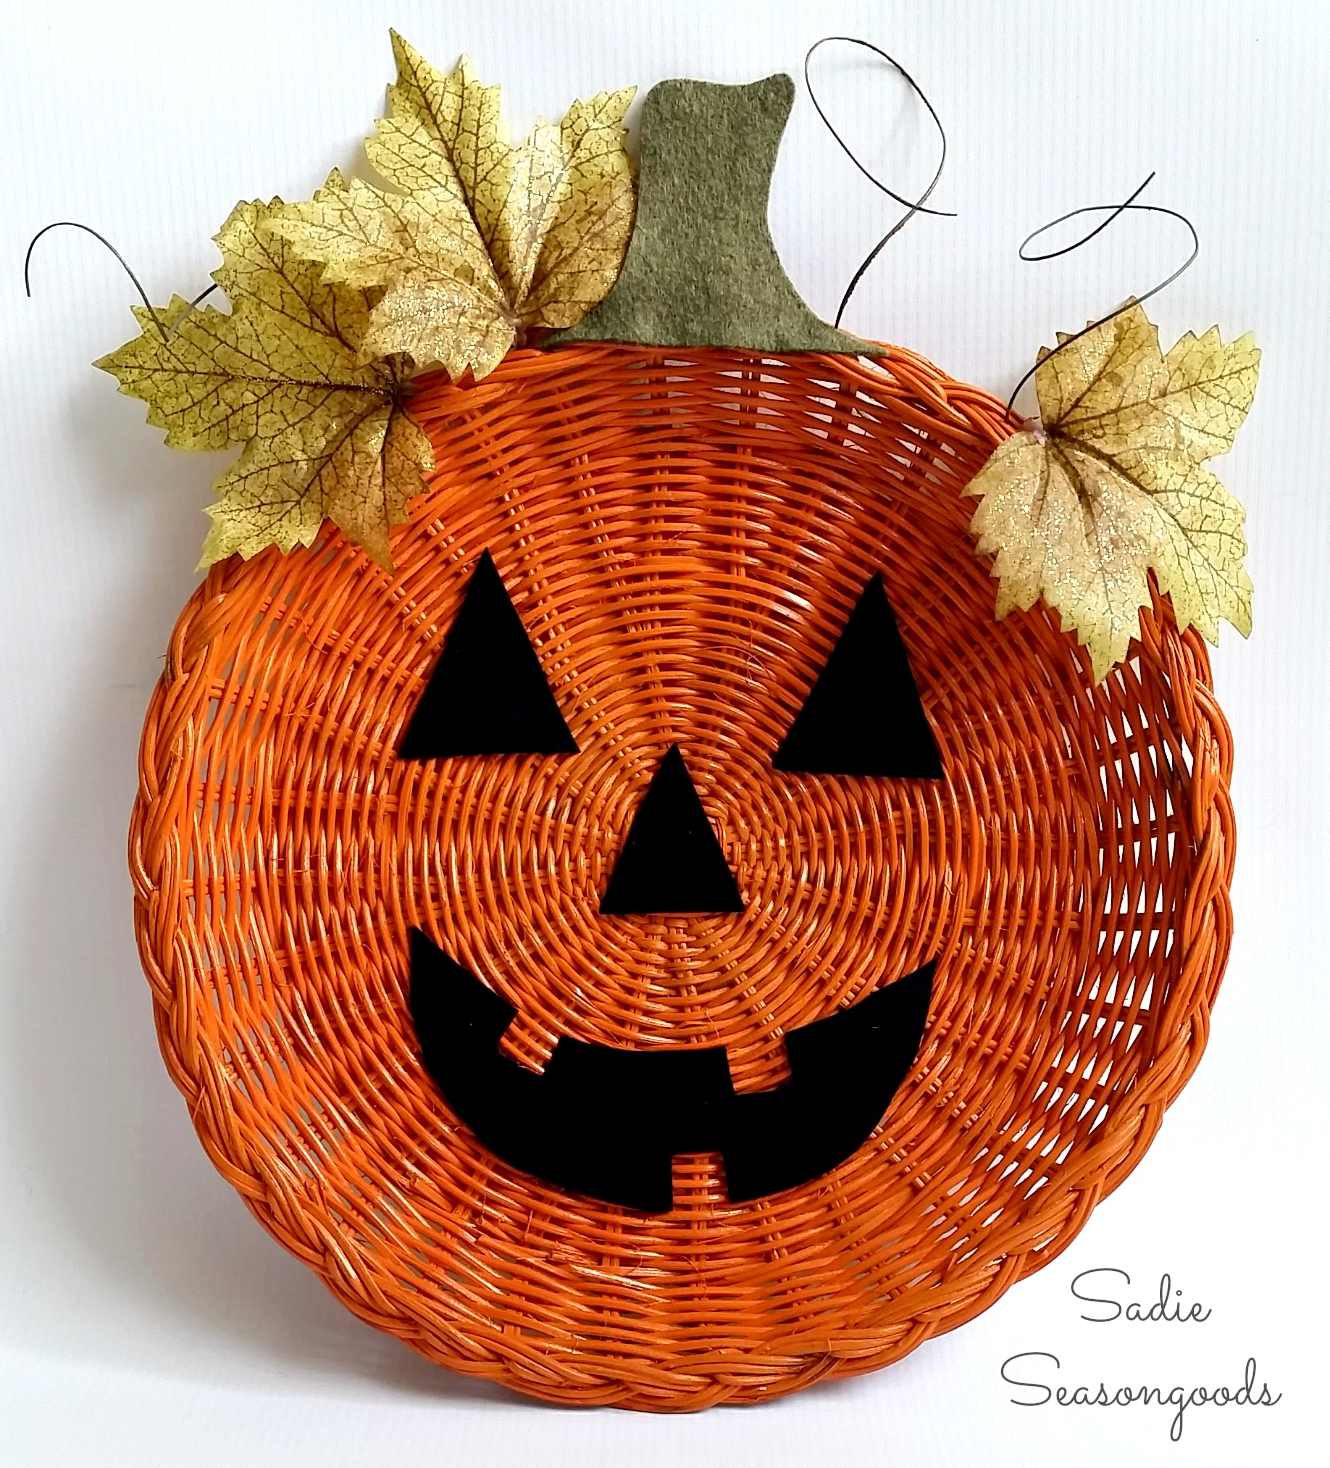 Paper Plate Holder Jack-o-Lantern from Sadie Seasongoods